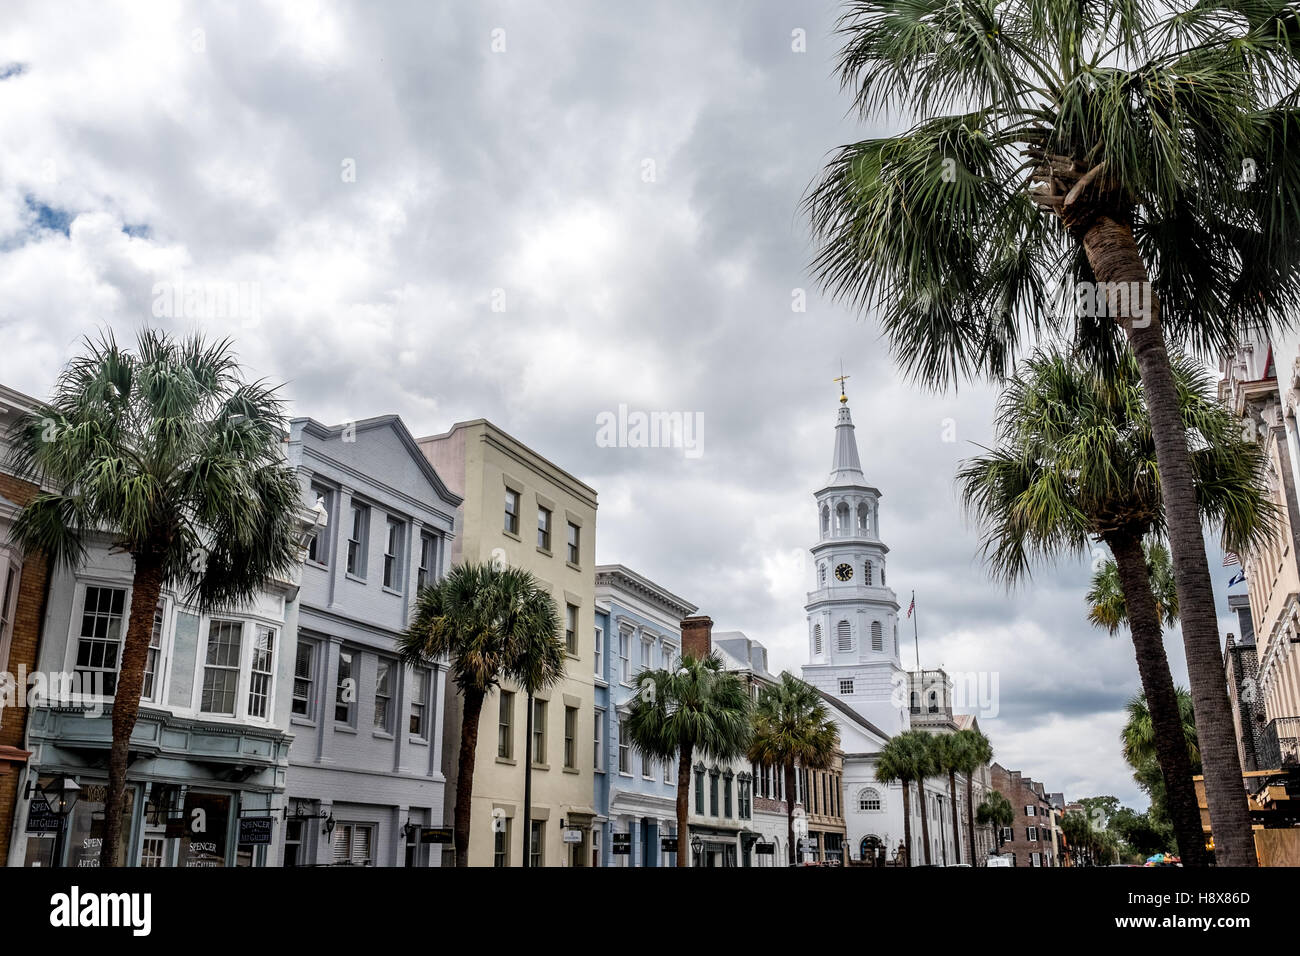 Broad Street Charleston South Carolina building southern frontage architecture old south - Stock Image